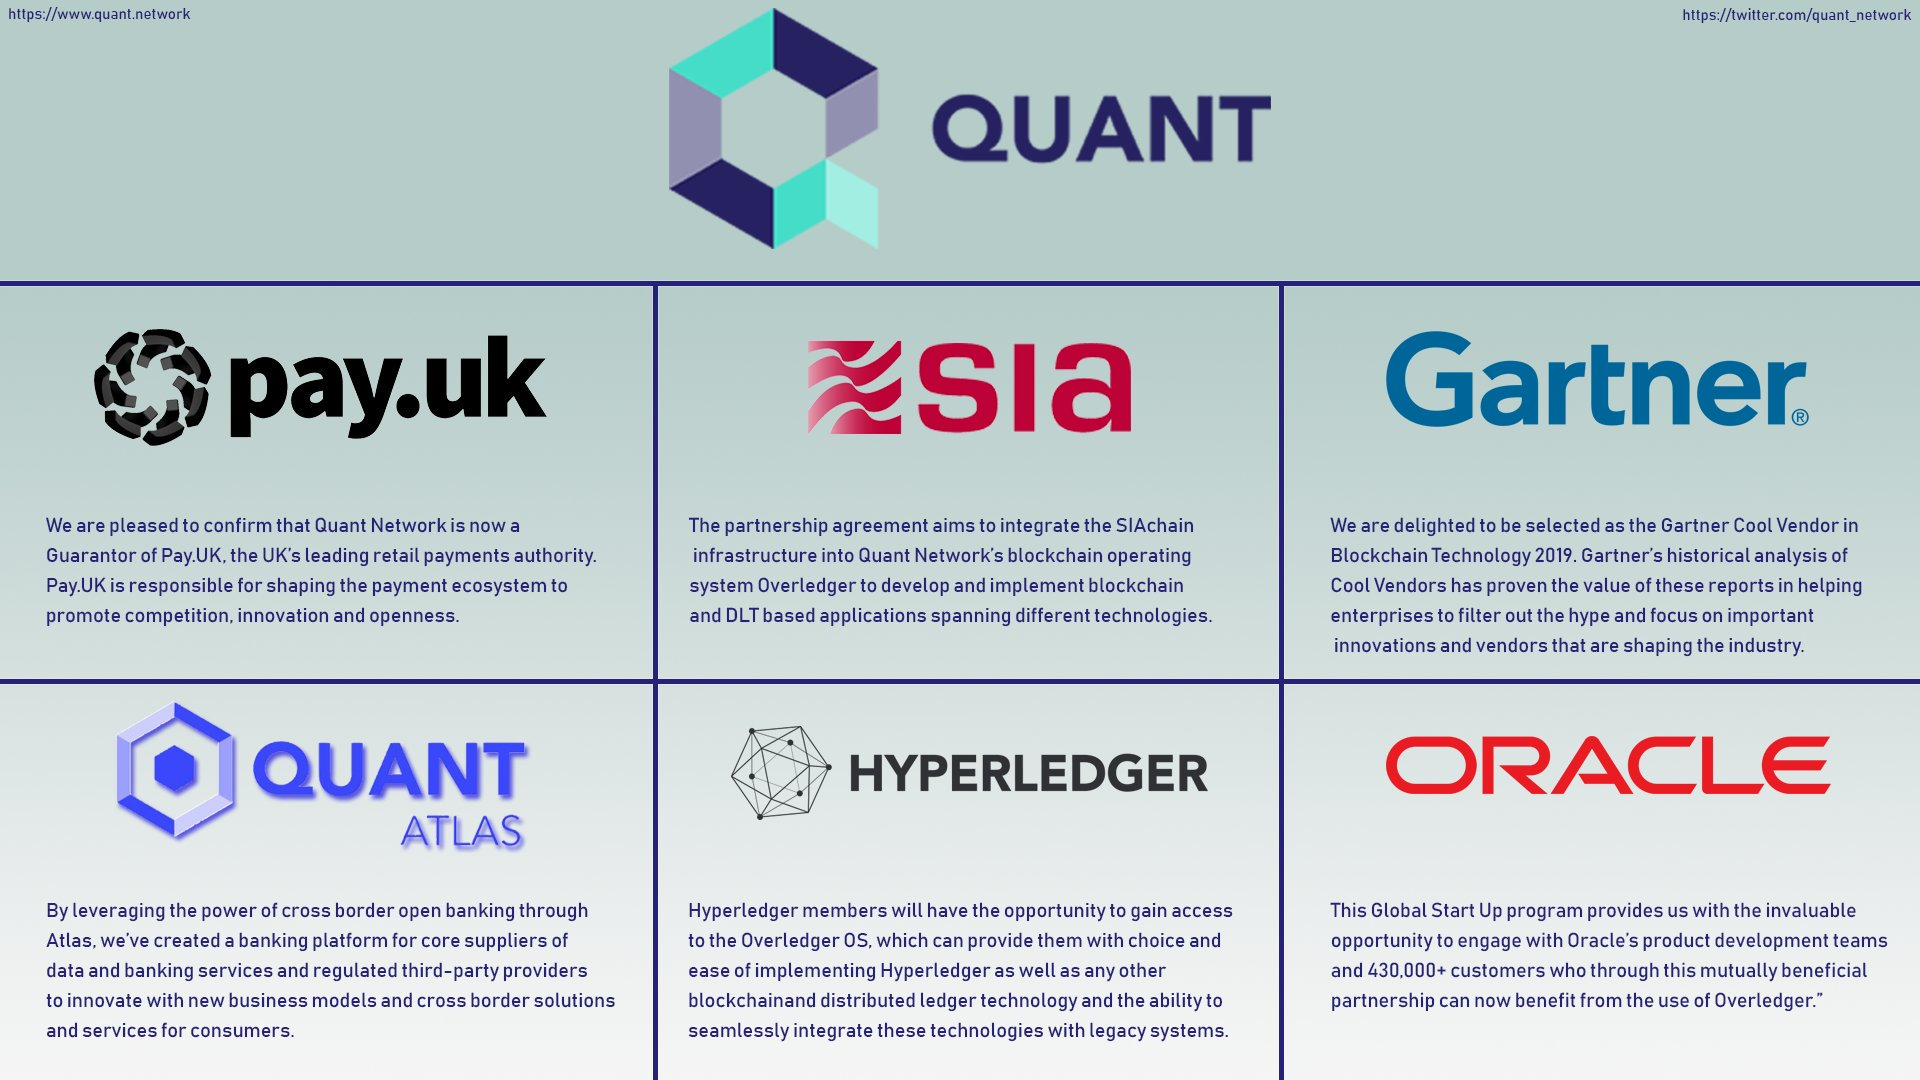 If 👏 You 👏 Don't 👏 Understand 👏 The 👏 Huge 👏 Scope 👏 Of 👏 $QNT 👏 By  👏 Now 👏 Then 👏 You 👏 Can't 👏Be 👏 Helped  #crypto #blockchain #DLT $ETH $BTC $IDEX https://t.co/YADx1ouBMX